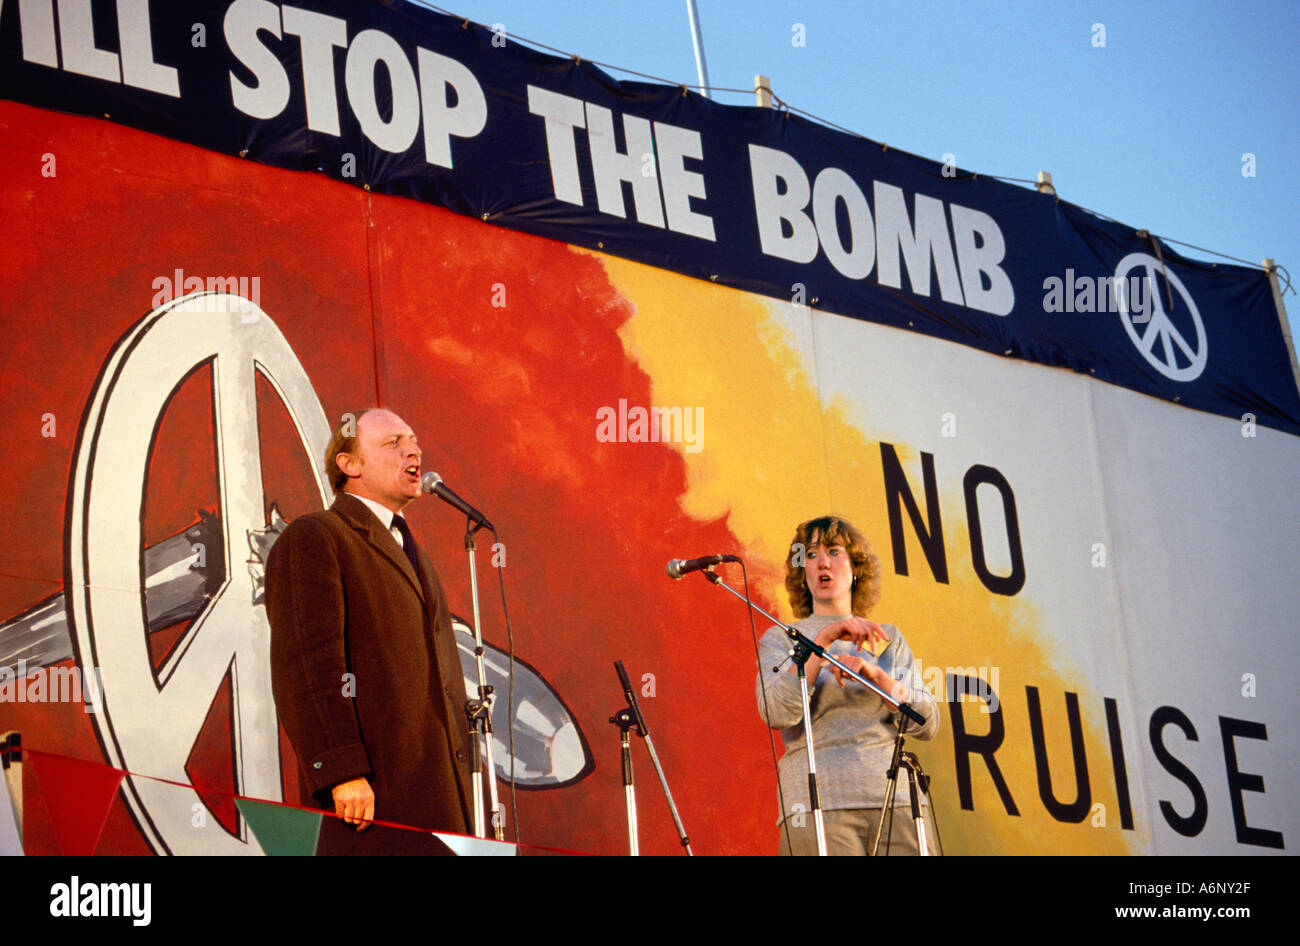 Neil Kinnock addressing a 1983 rally in Hyde Park London organised by CND against Cruise and Trident nuclear missiles. - Stock Image